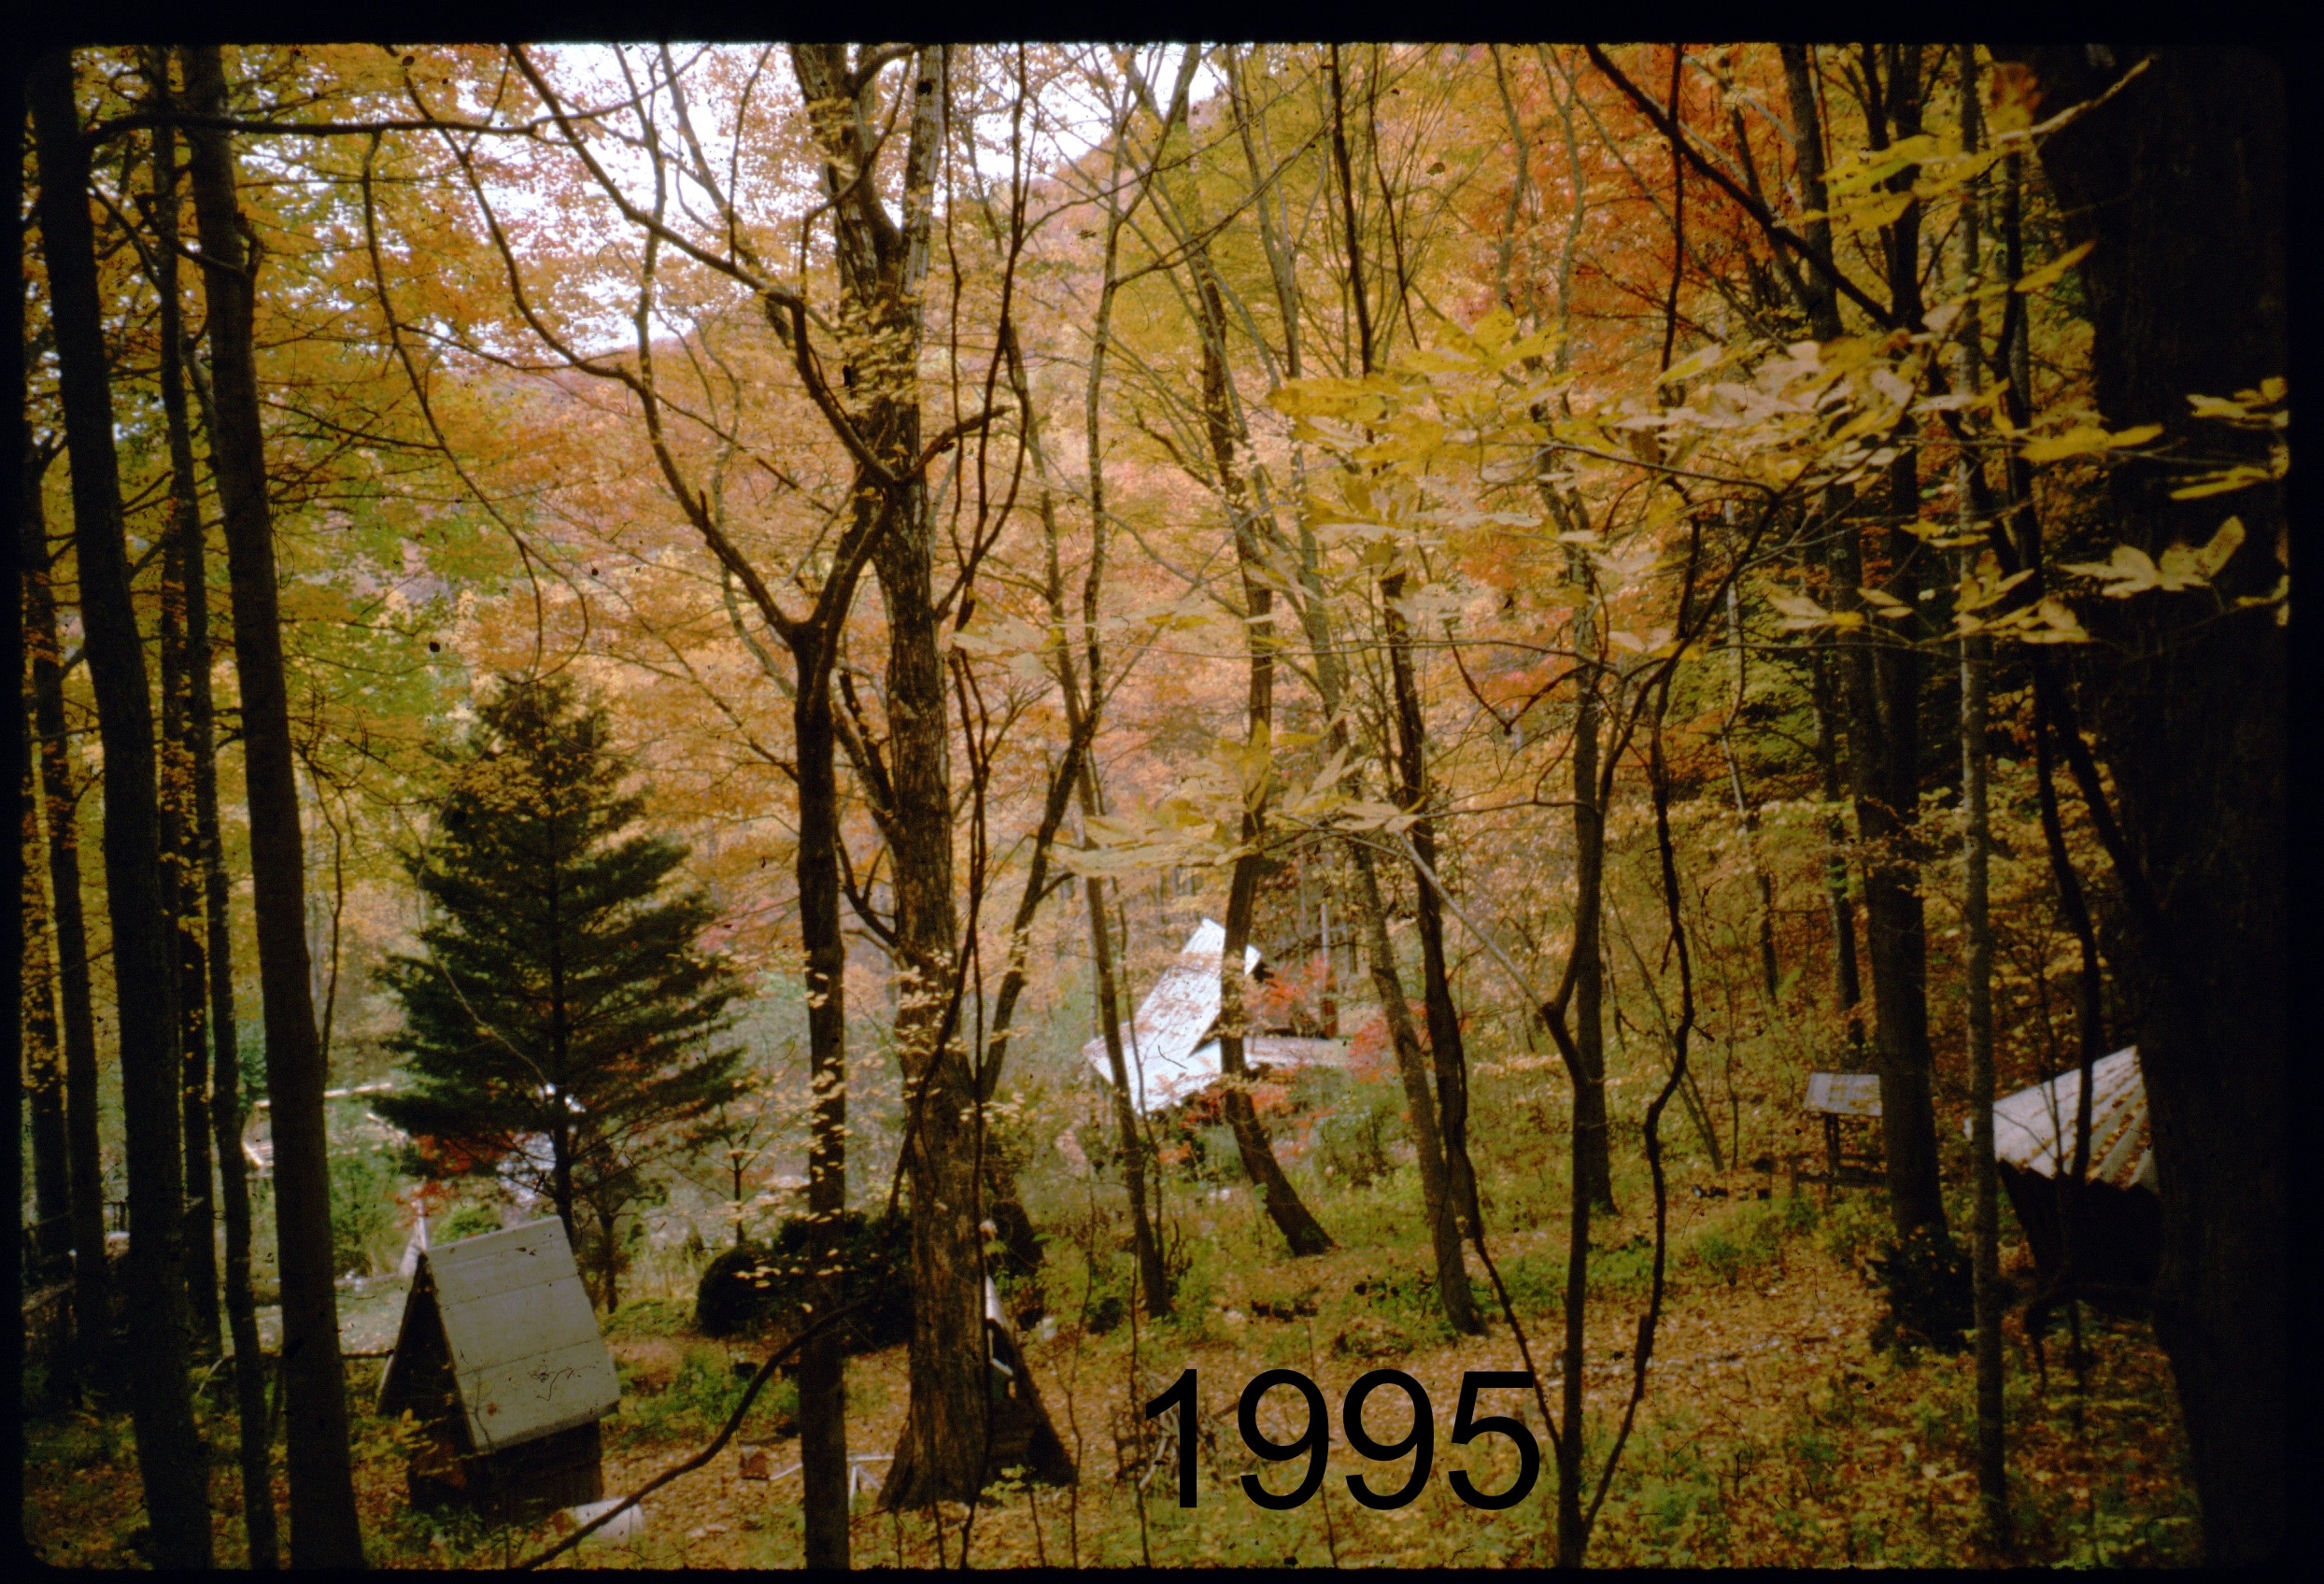 1995 MG from NF autumn.jpg